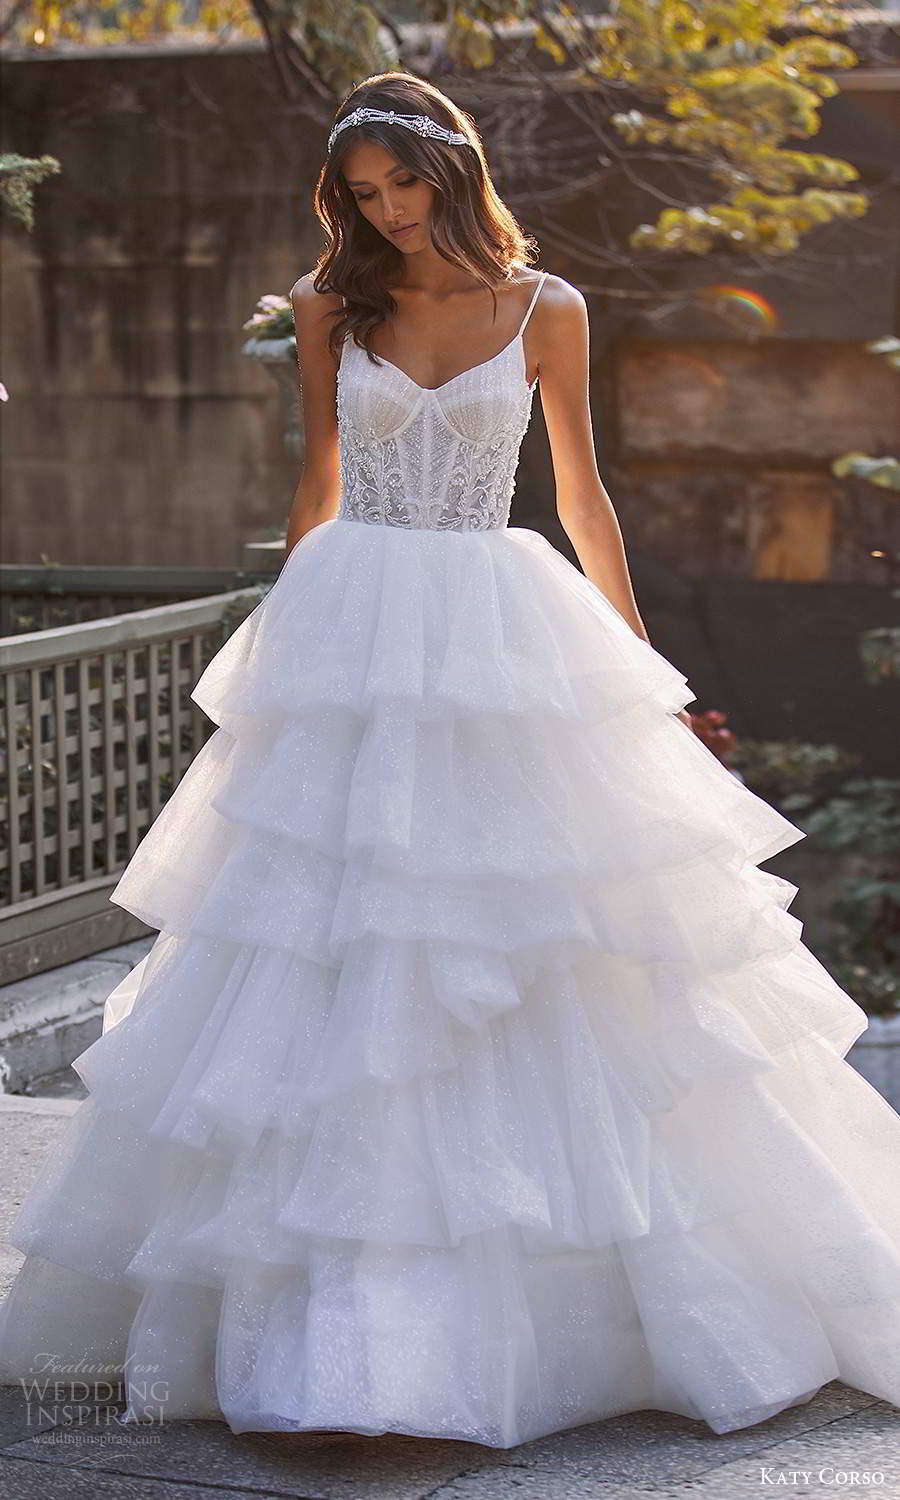 katy corso 2021 bridal sleeveless thin straps sweetheart neckline embellished bodice glitter tiered skirt a line ball gown wedidng dress chapel train (14) mv